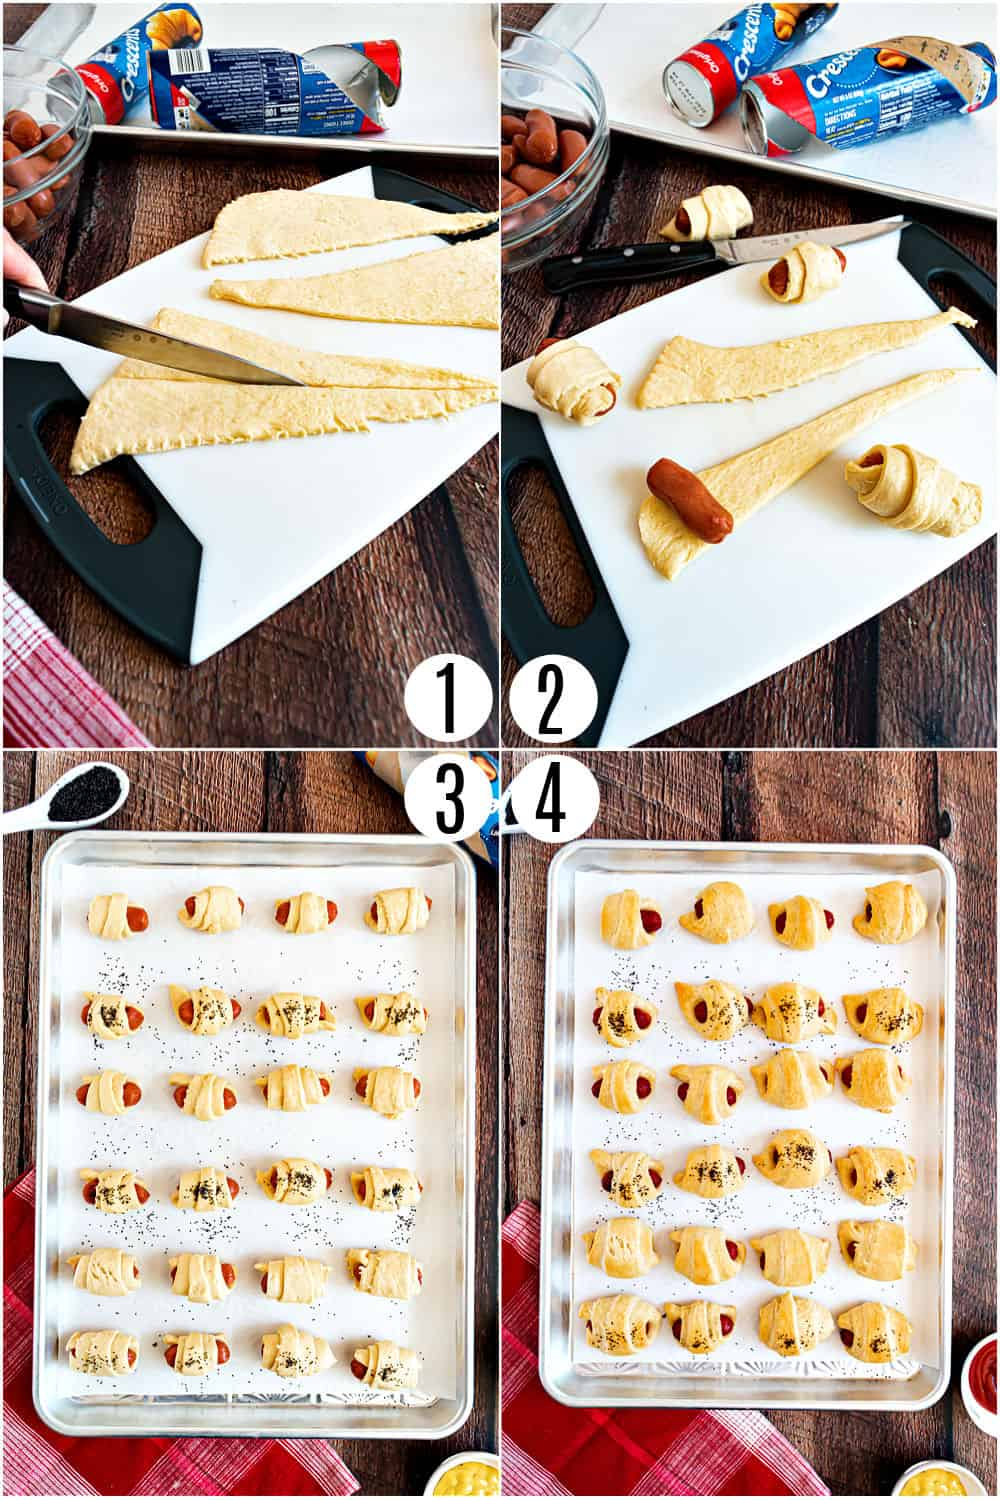 Step by step photos showing how to make pigs in a blanket.